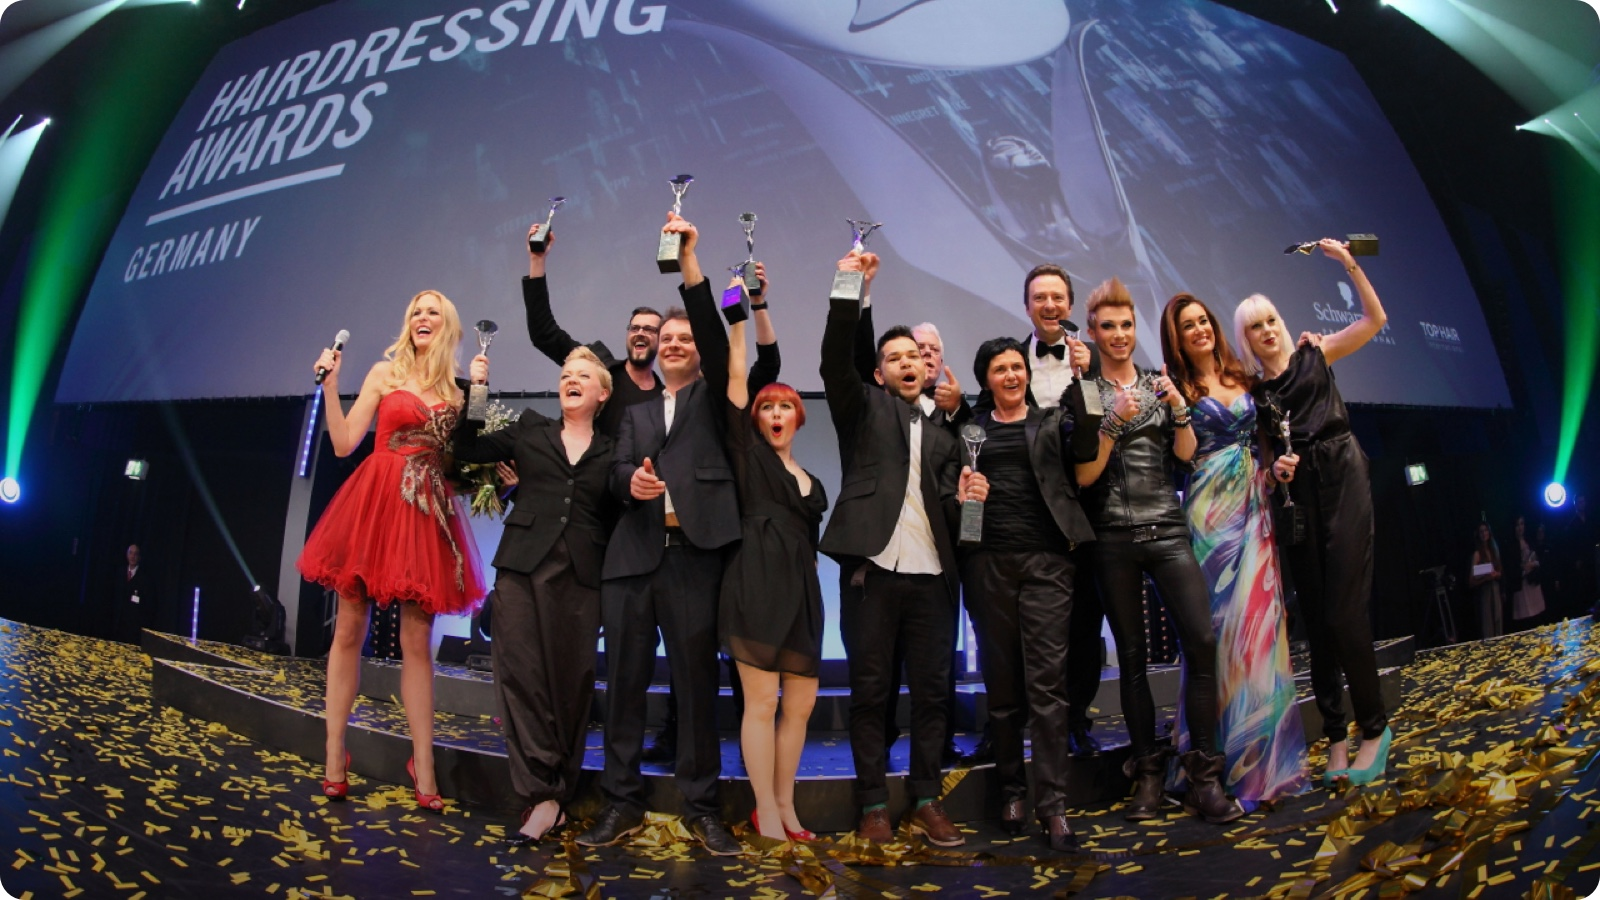 hairdressing awards